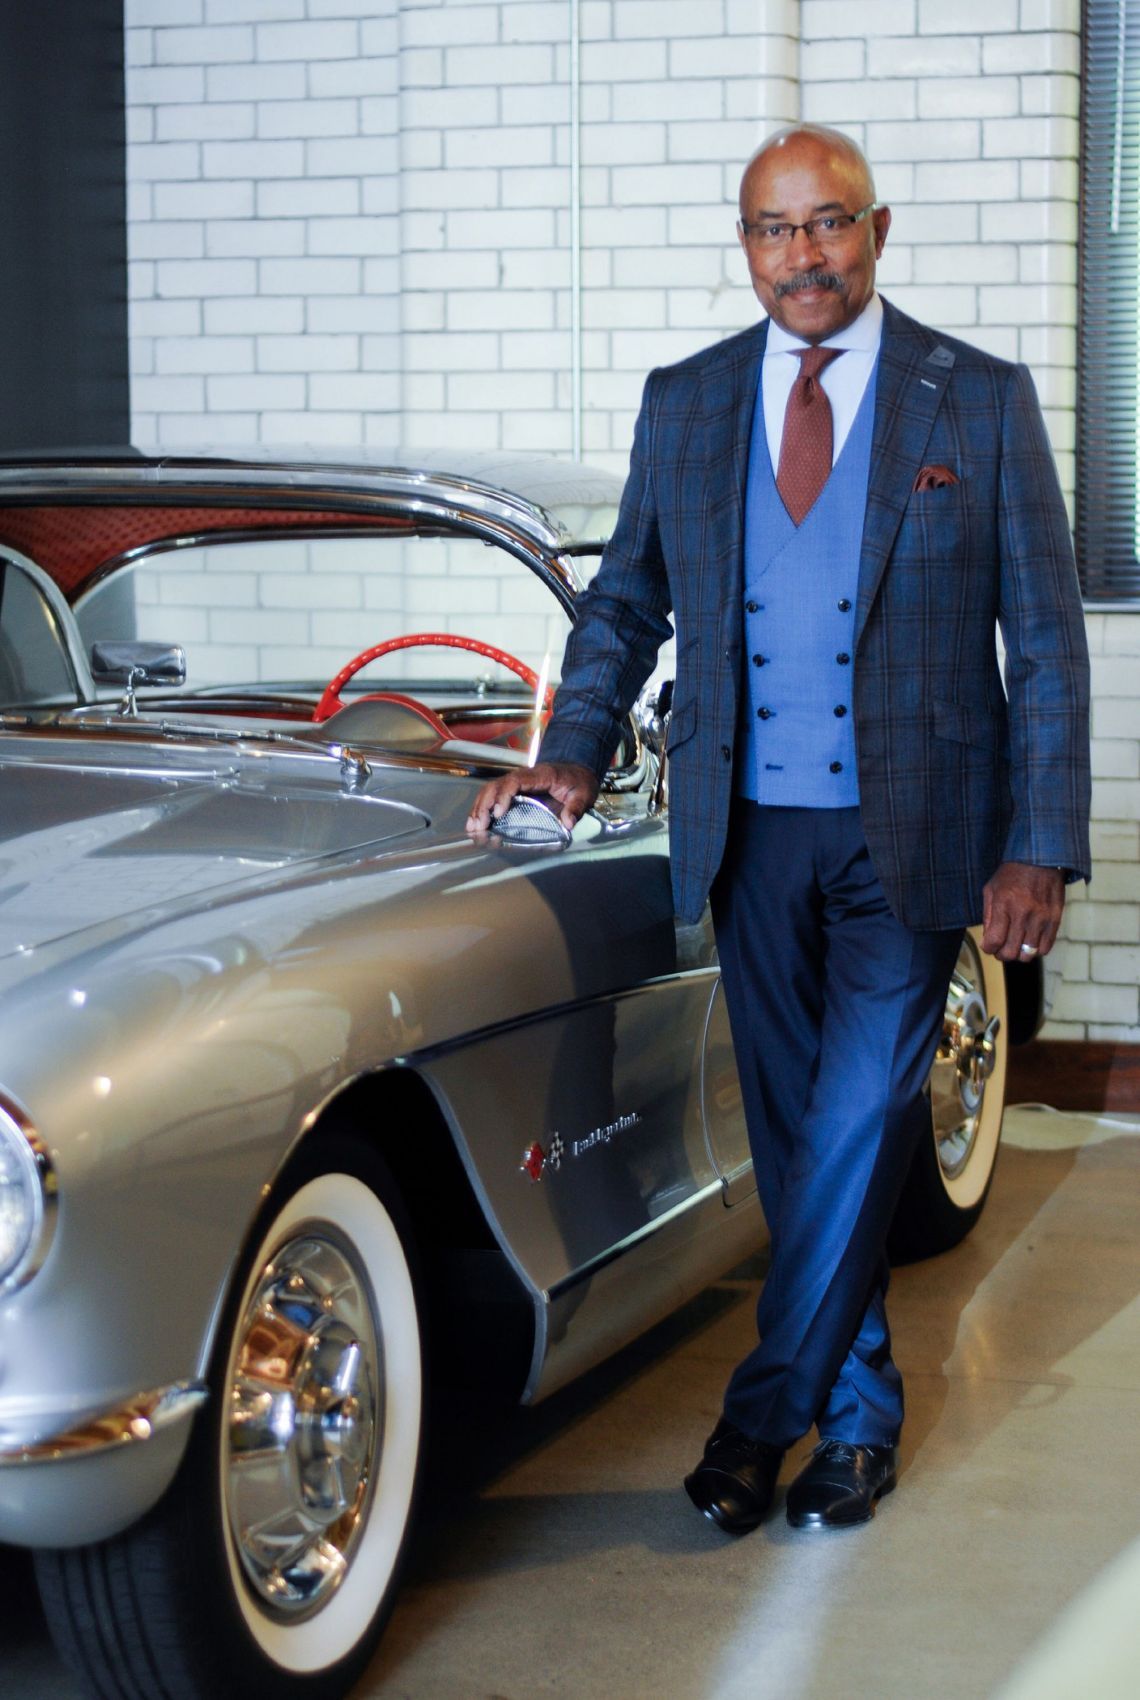 Car Designer Ed Welburn in Clements and Church Bespoke